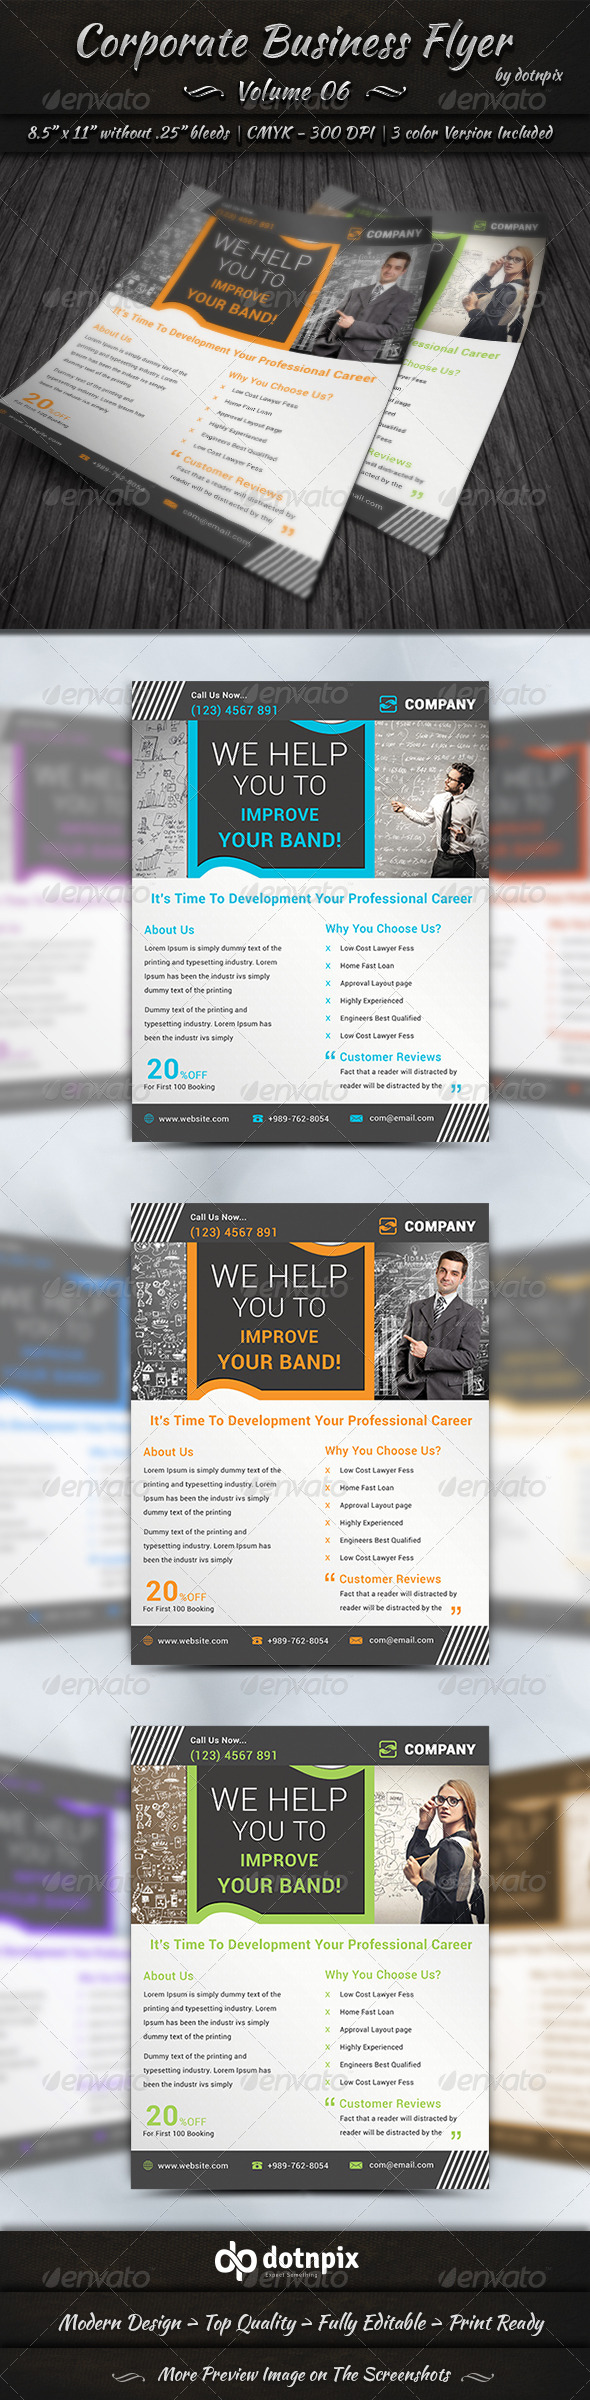 Corporate Business Flyer | Volume 6 - Corporate Flyers